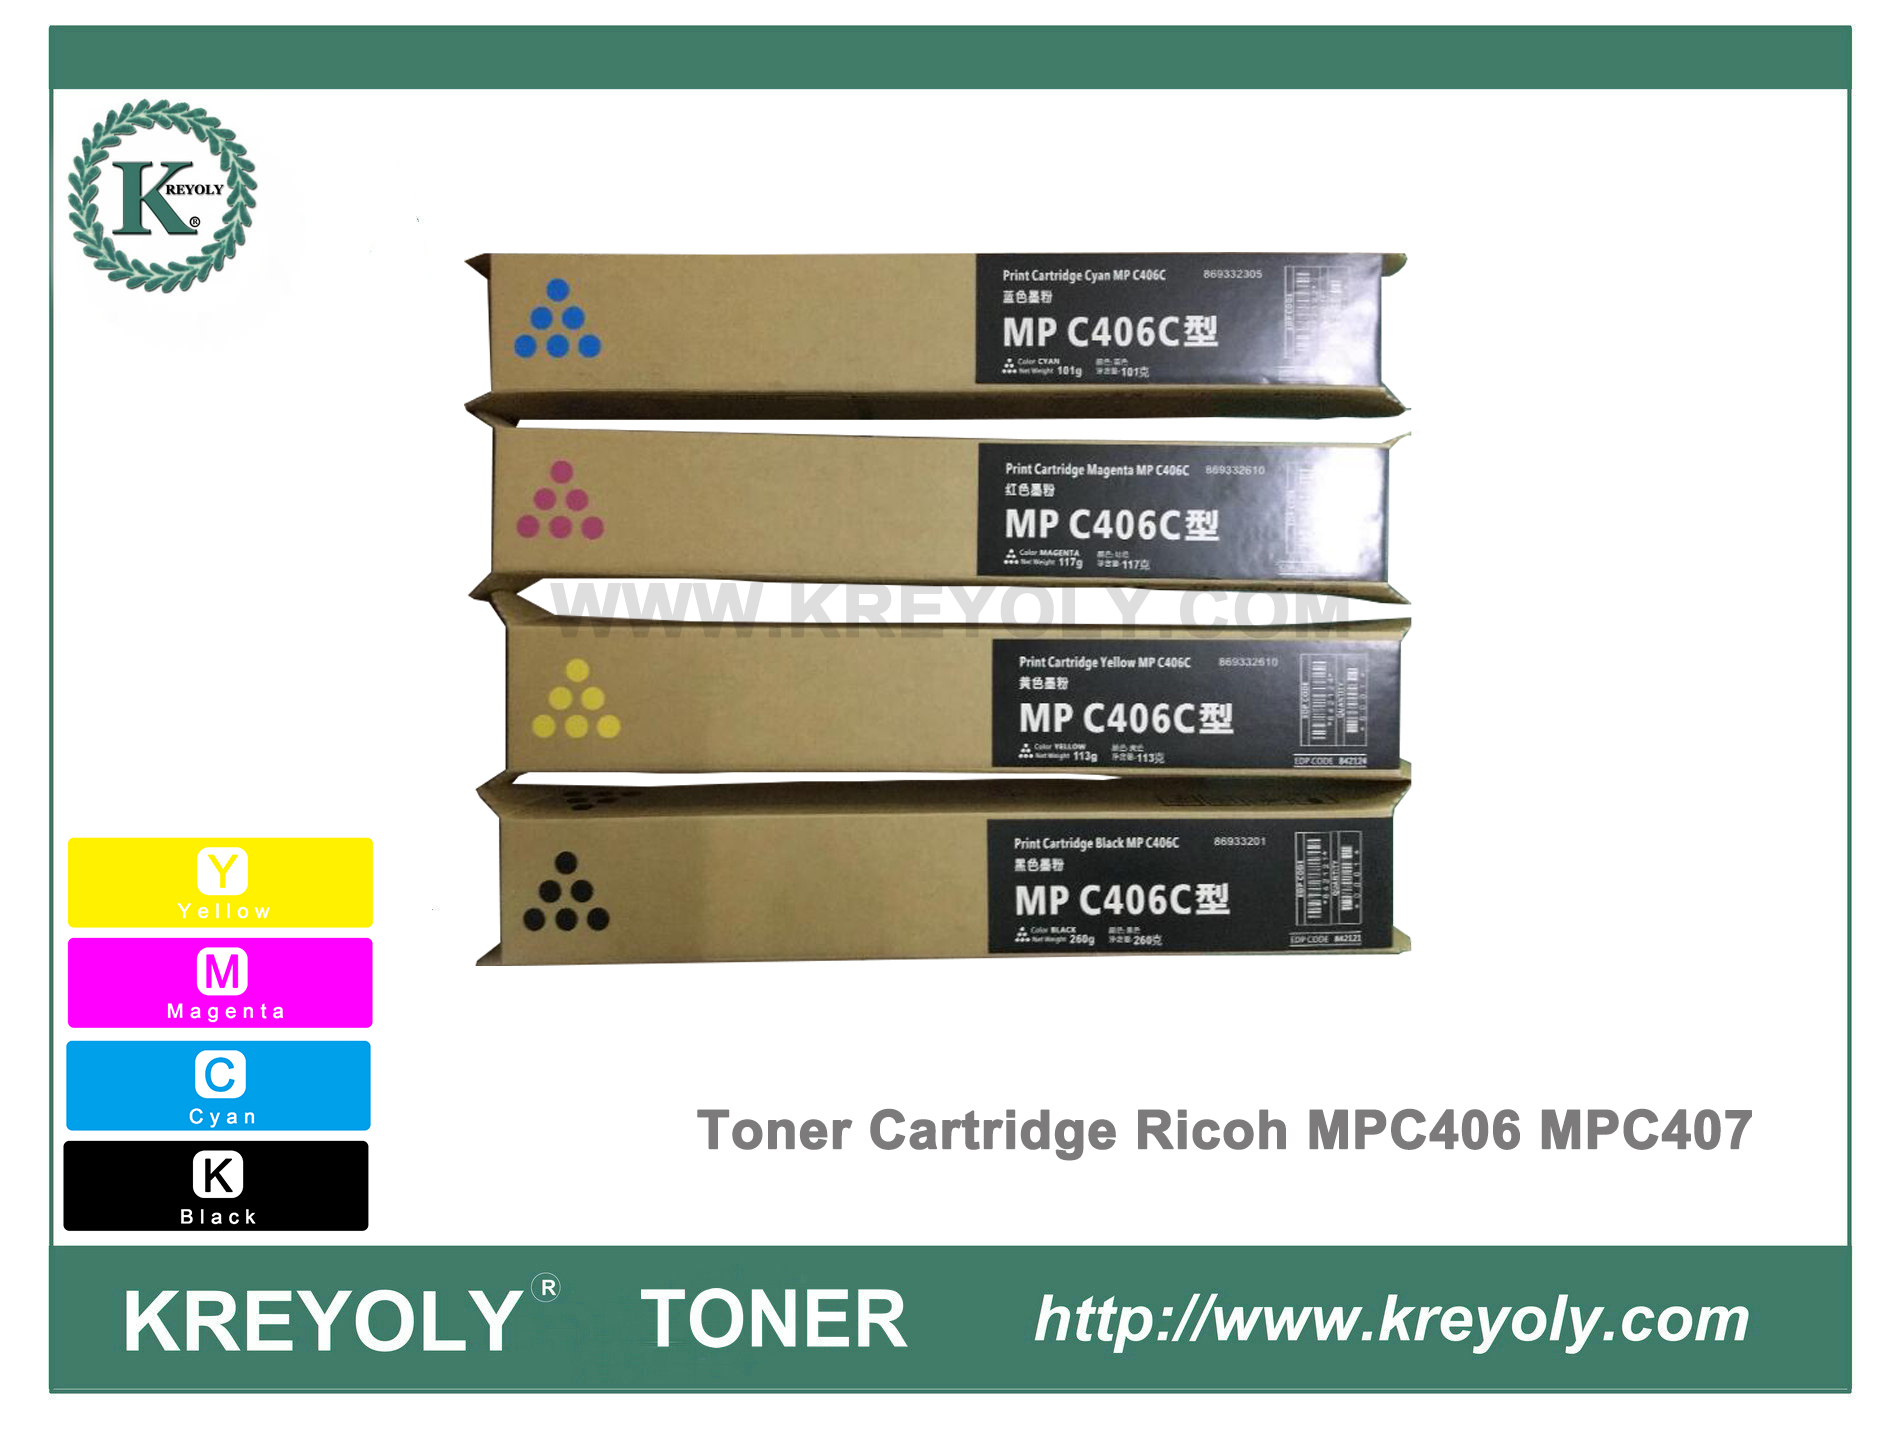 Ricoh Color Toner Cartridge MPC406 MPC407